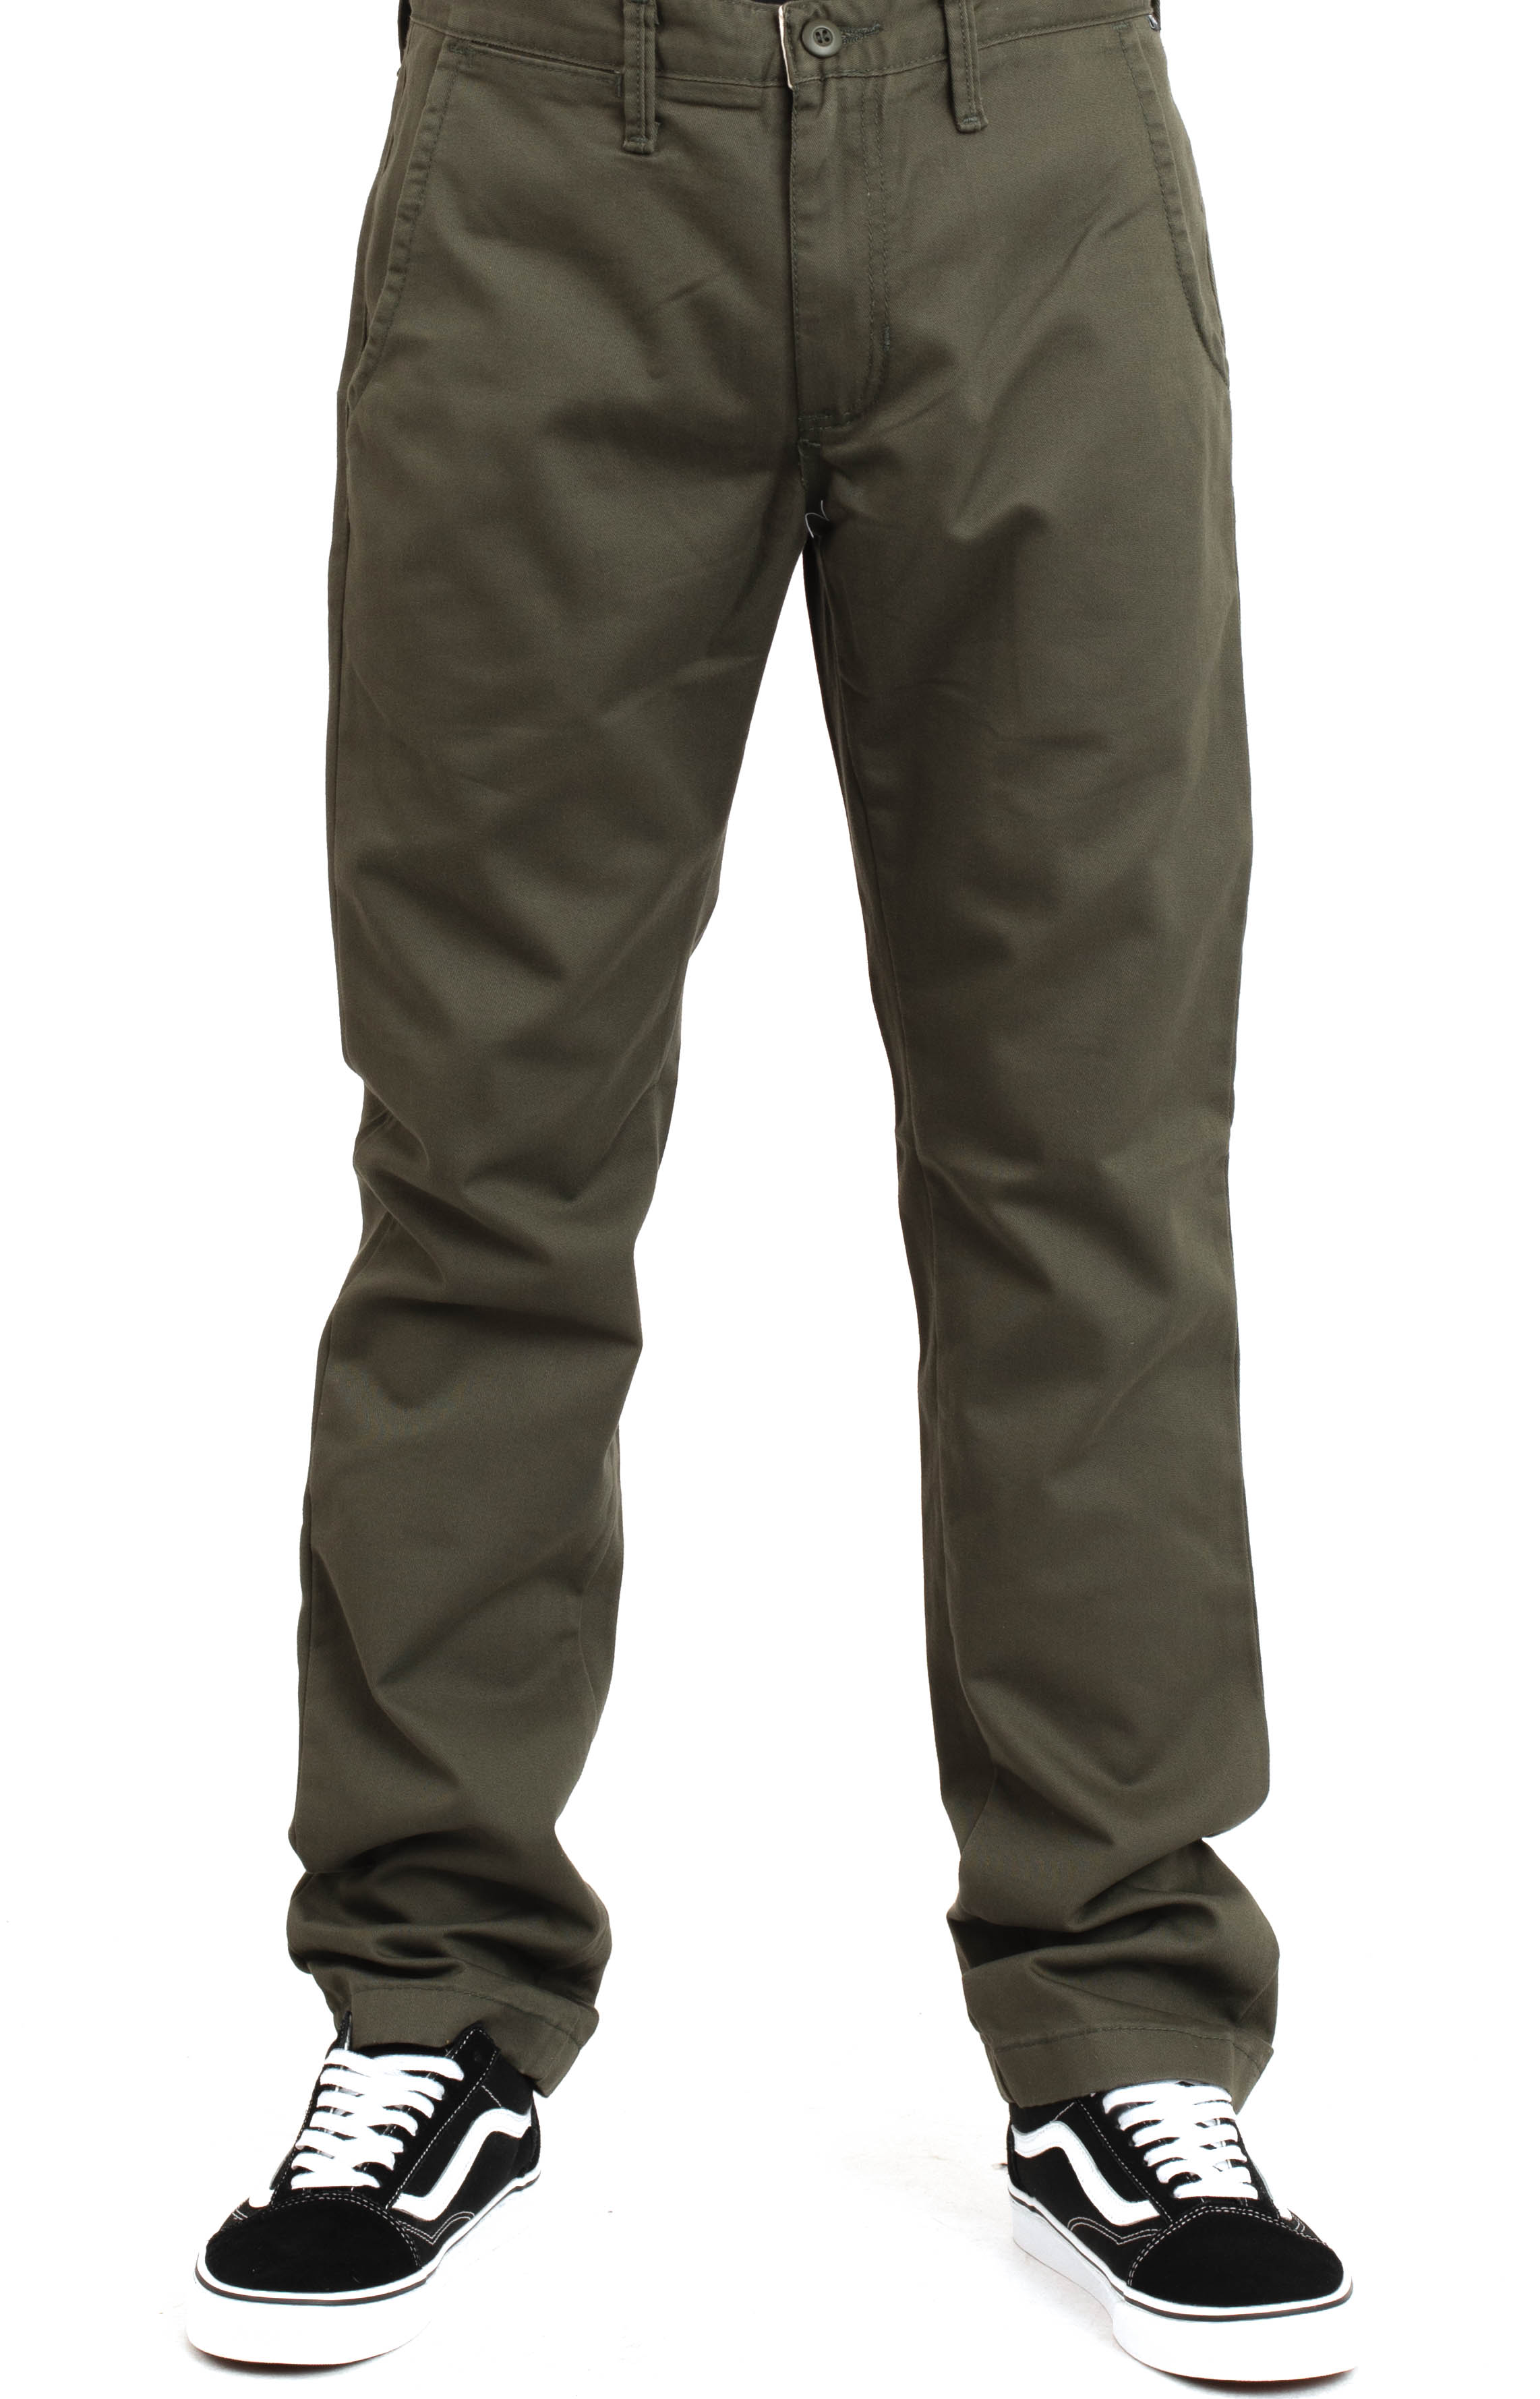 Authentic Chino Stretch Pant - Grape Leaf 2